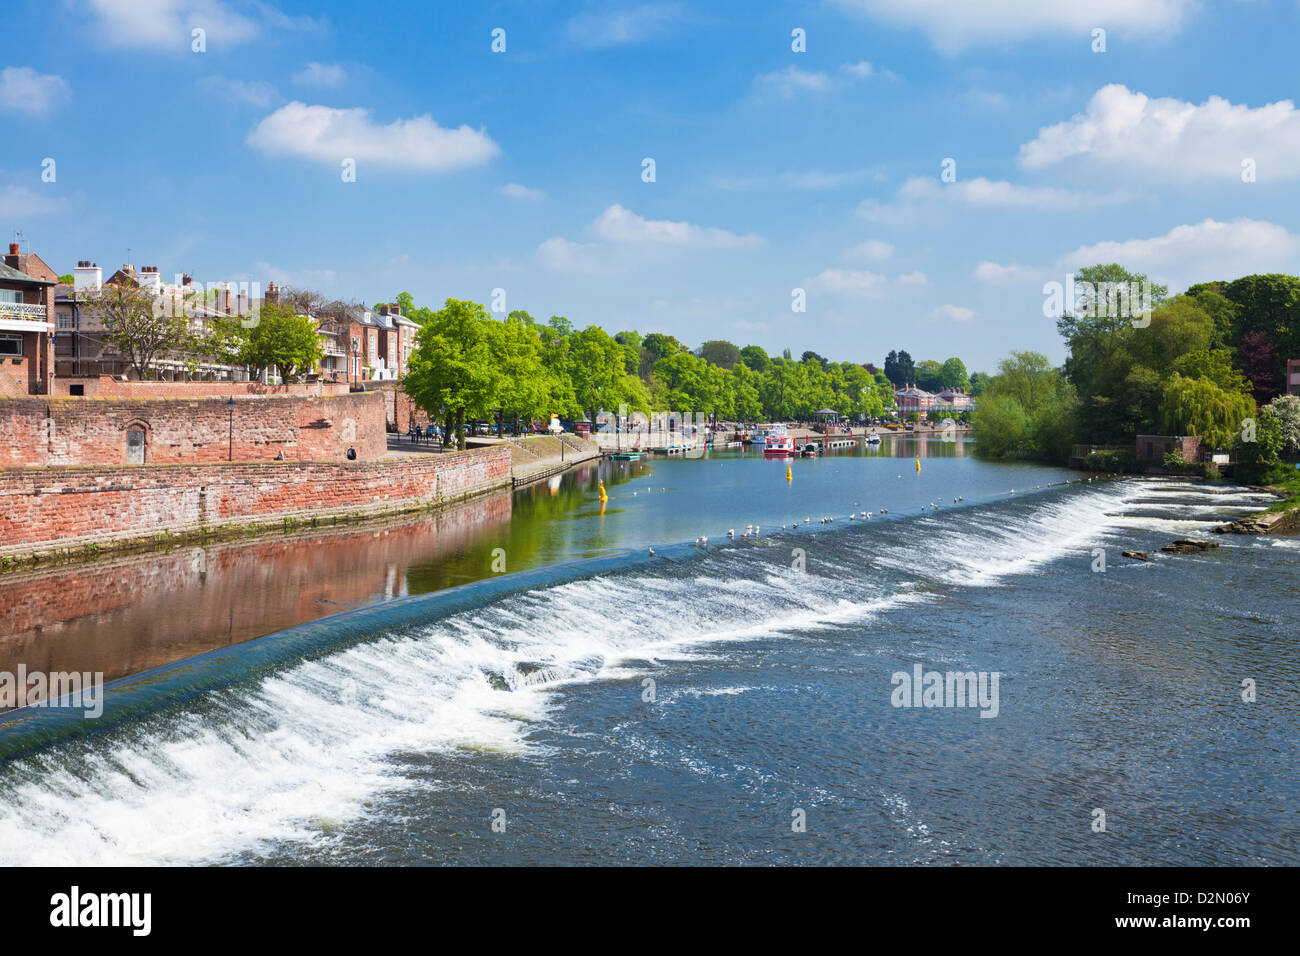 Chester Weir crossing the River Dee at Chester, Cheshire, England, United Kingdom, Europe Stock Photo